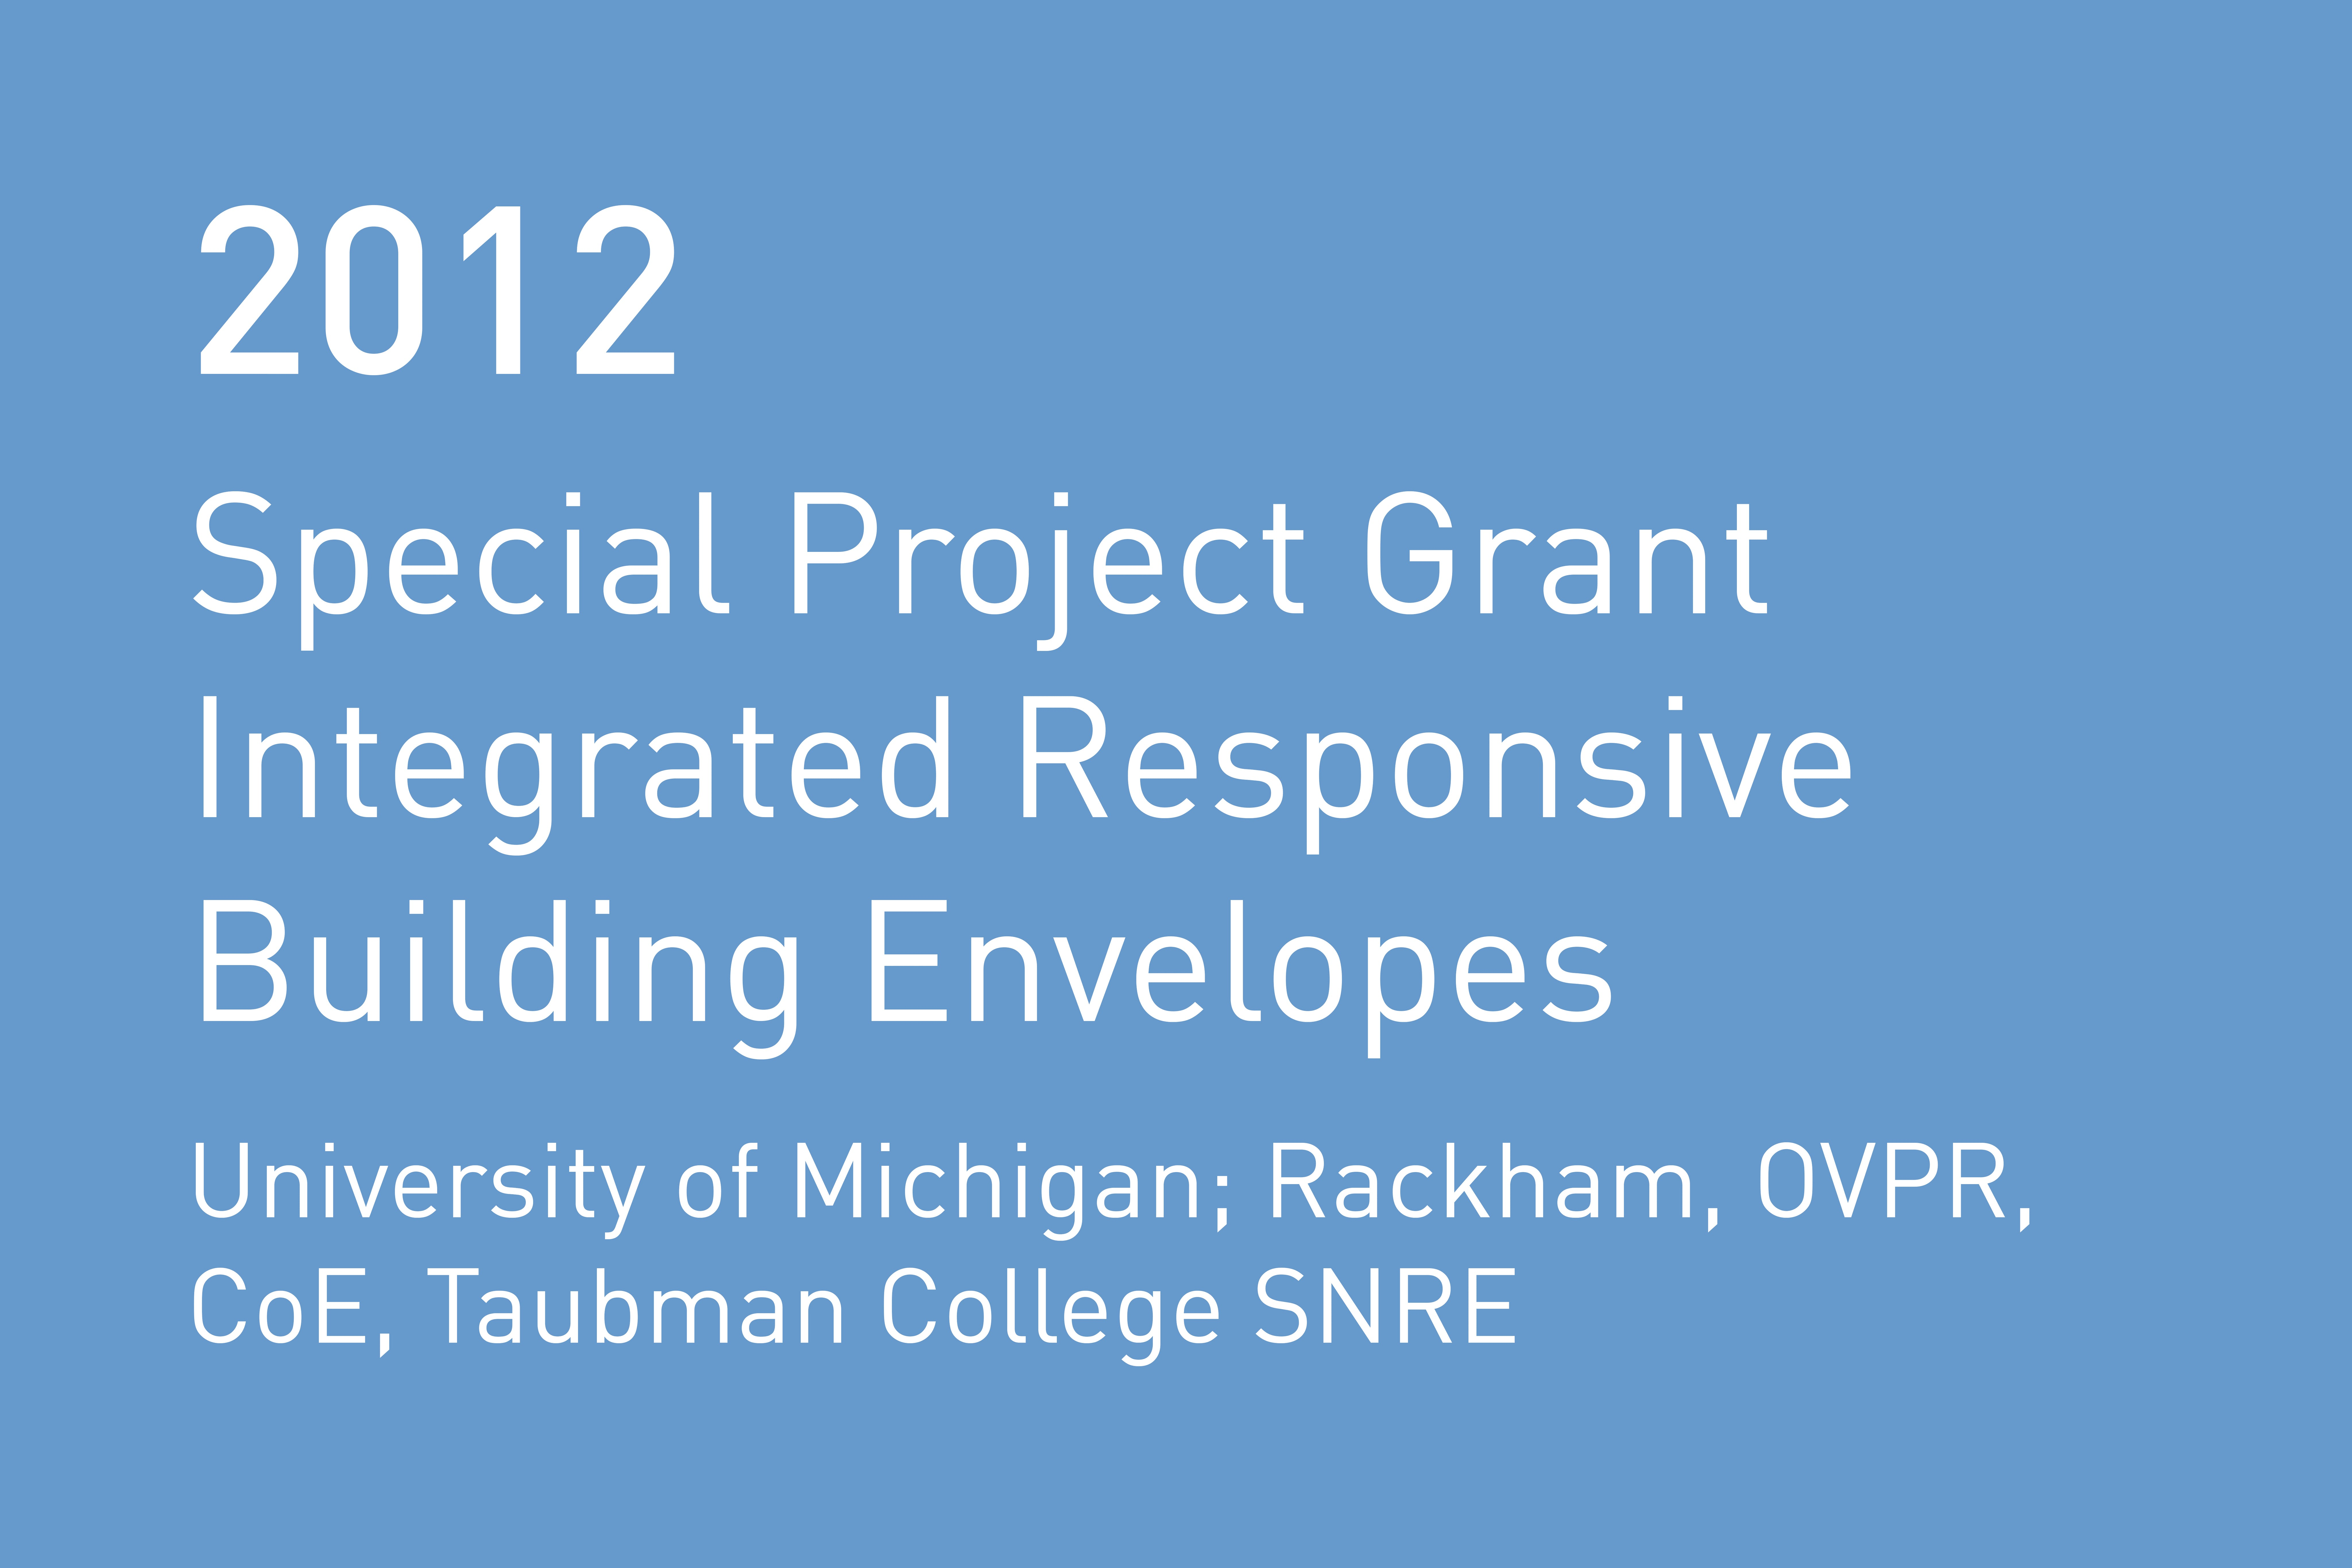 Rvtr 2012 special projects